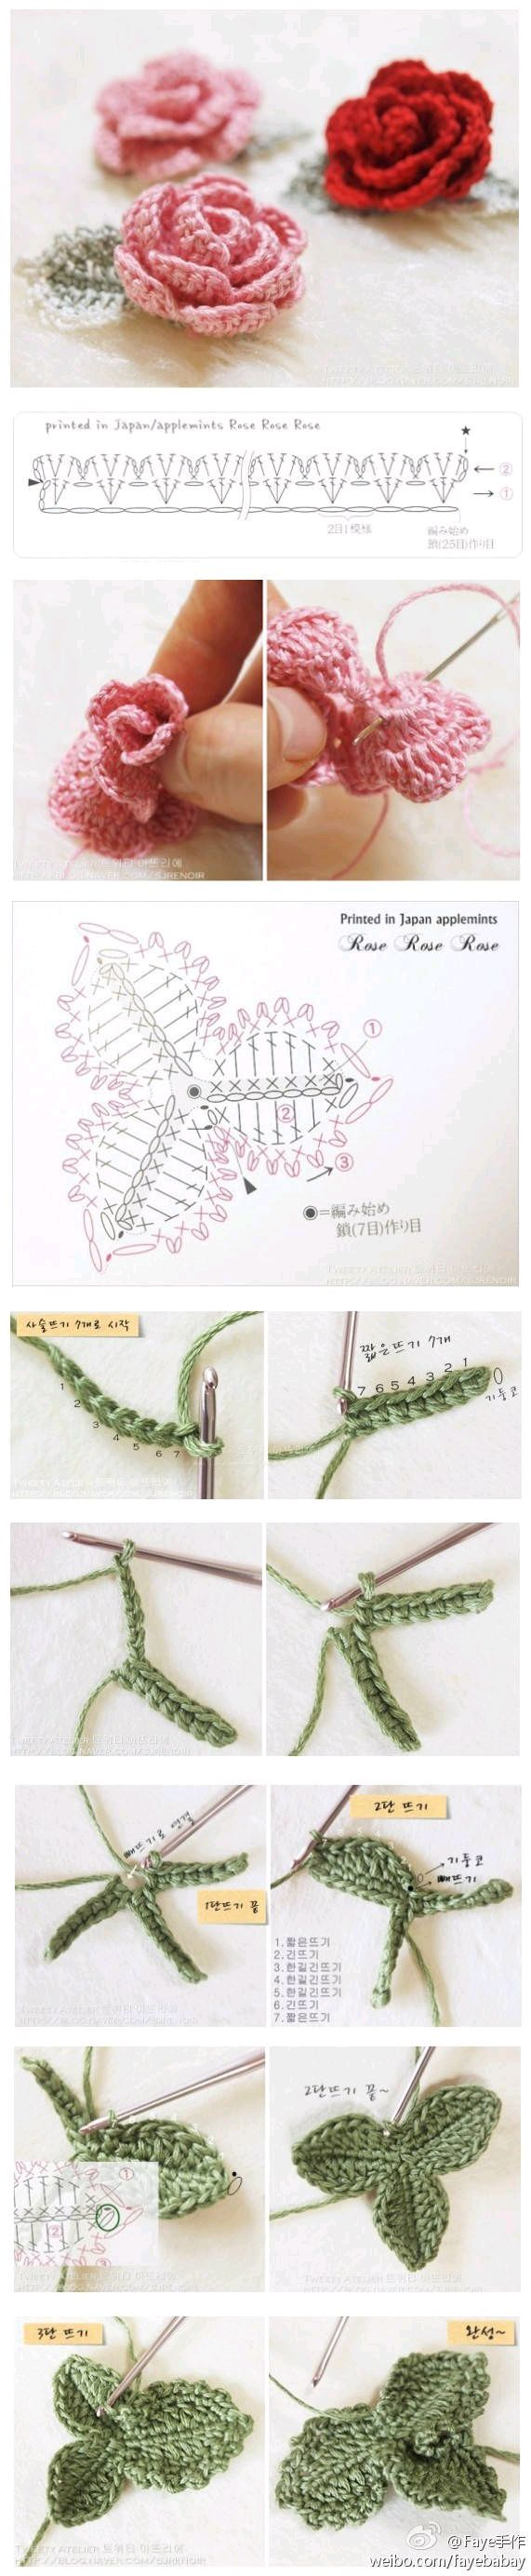 Crochet rose and leaf ♥LCF-MRS♥ with diagram and picture instructions.